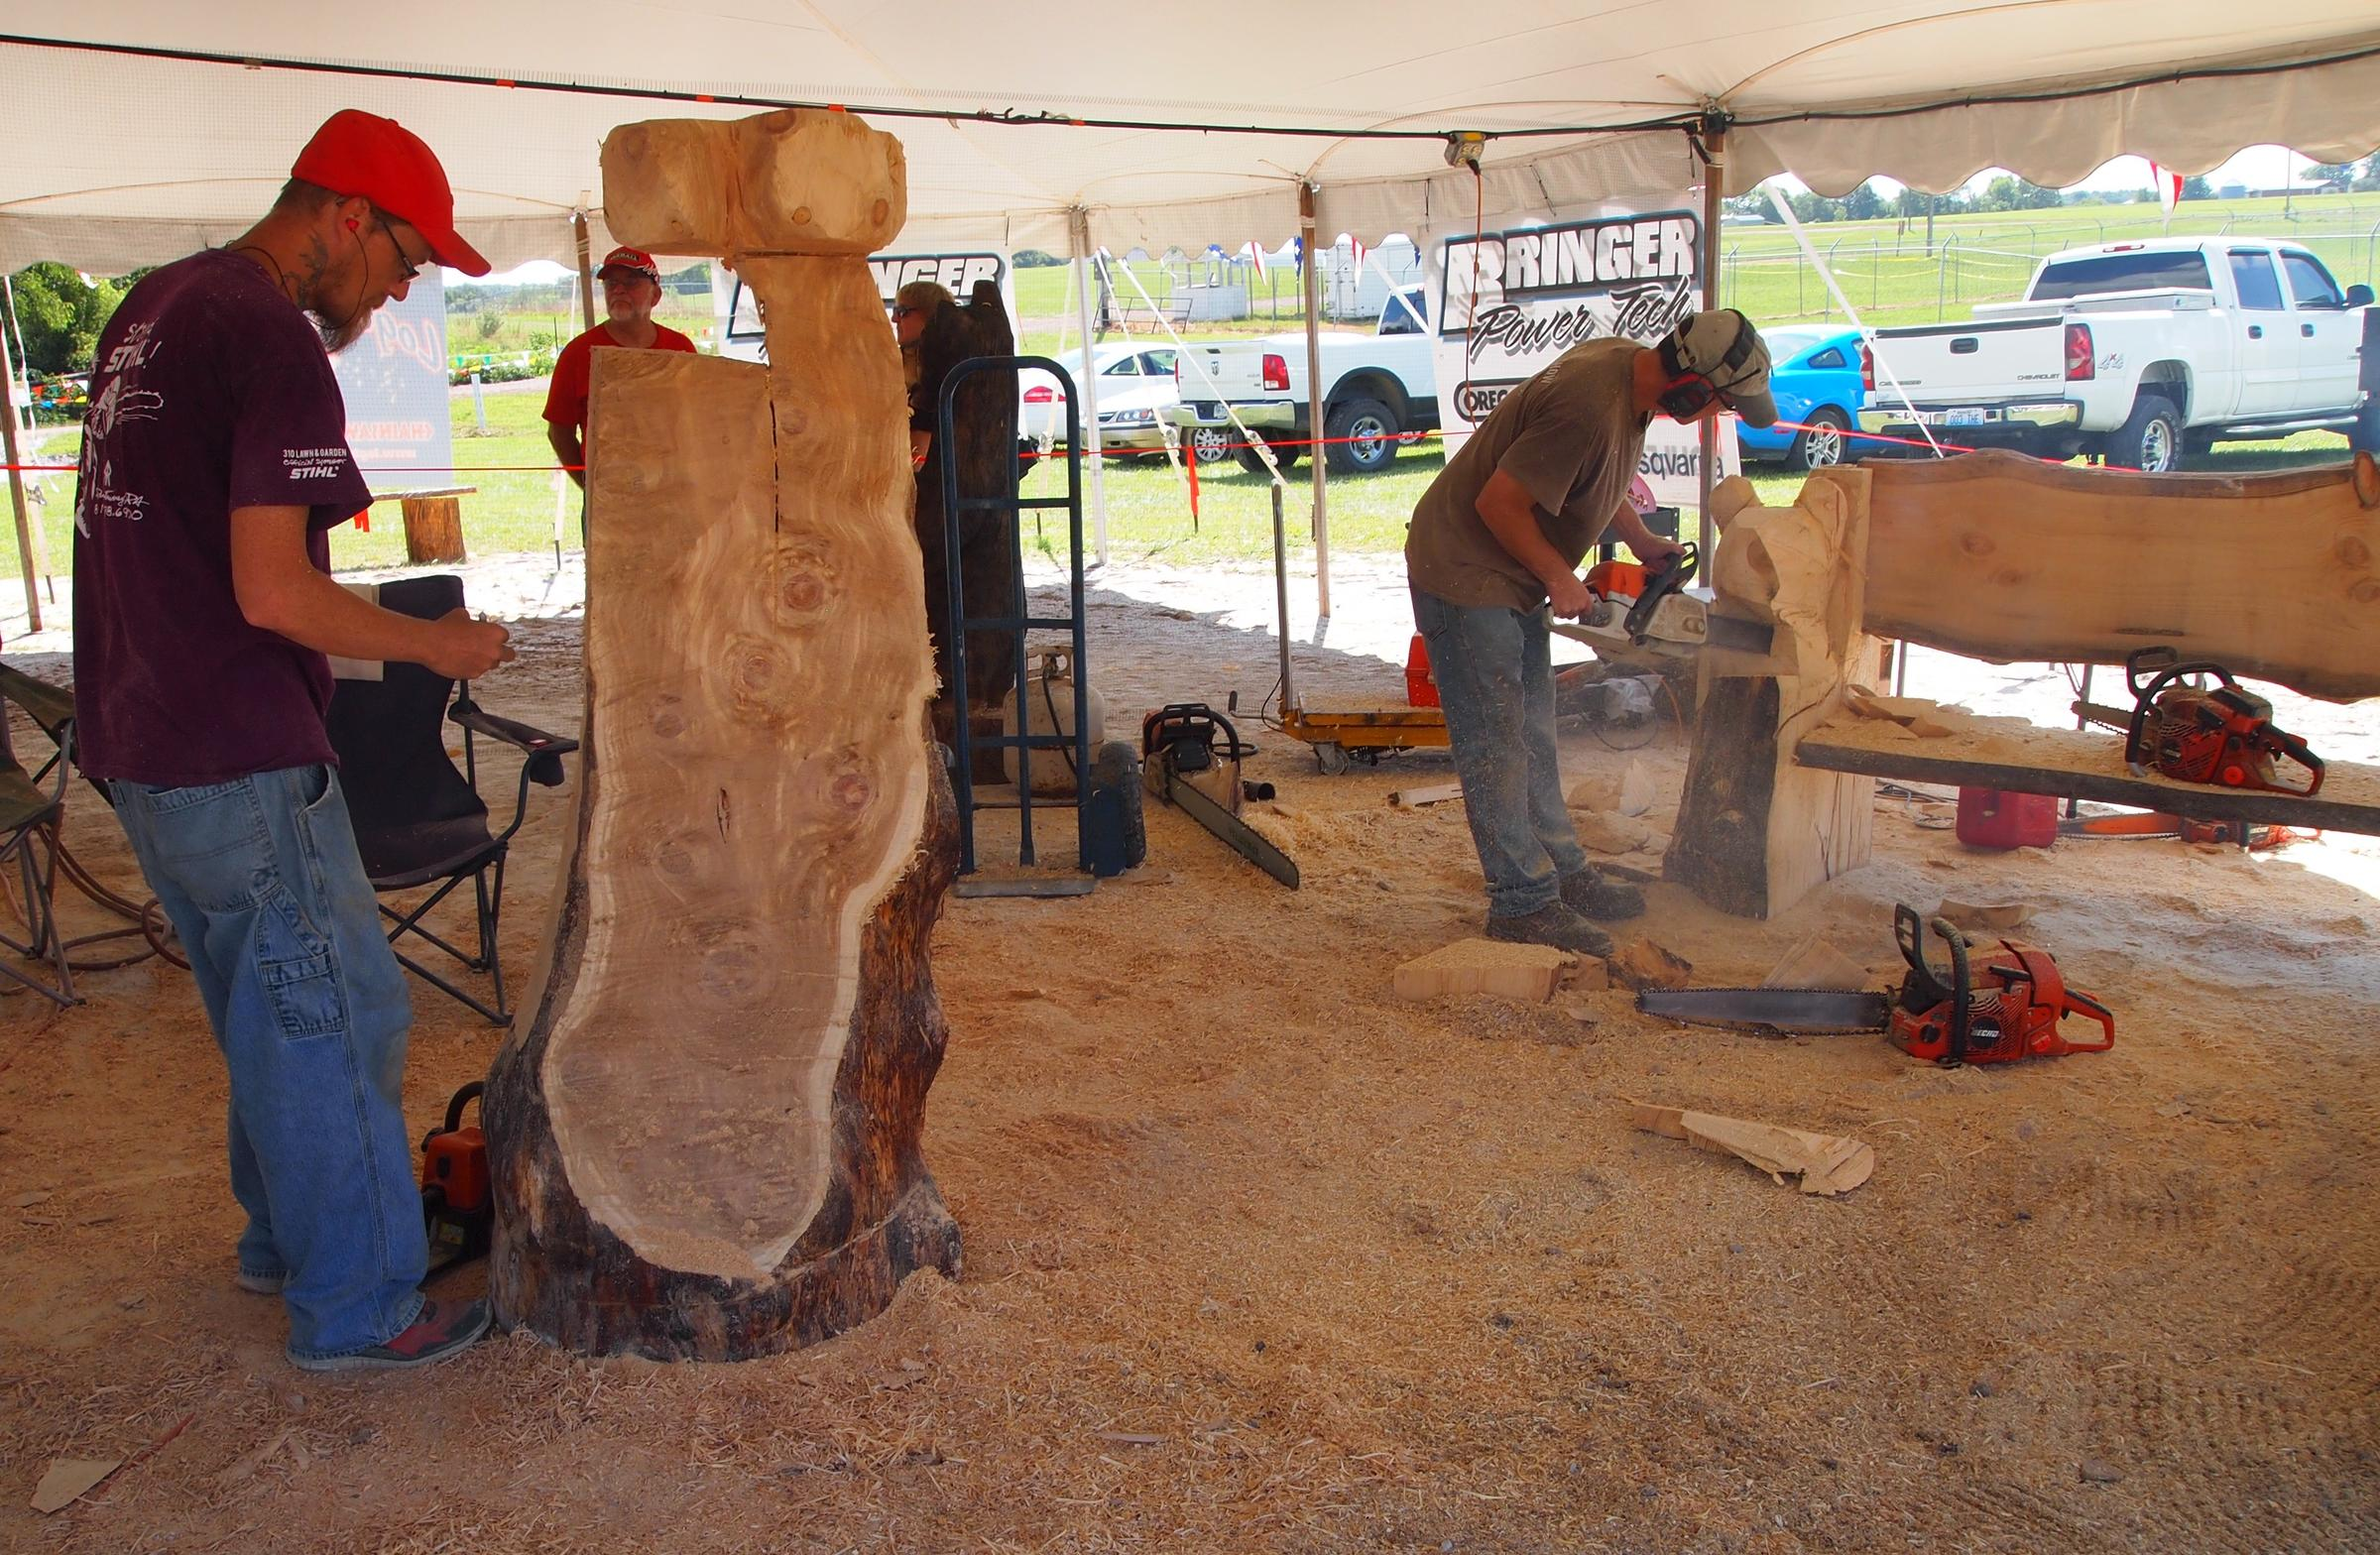 Chainsaw artists creating a buzz tri states public radio